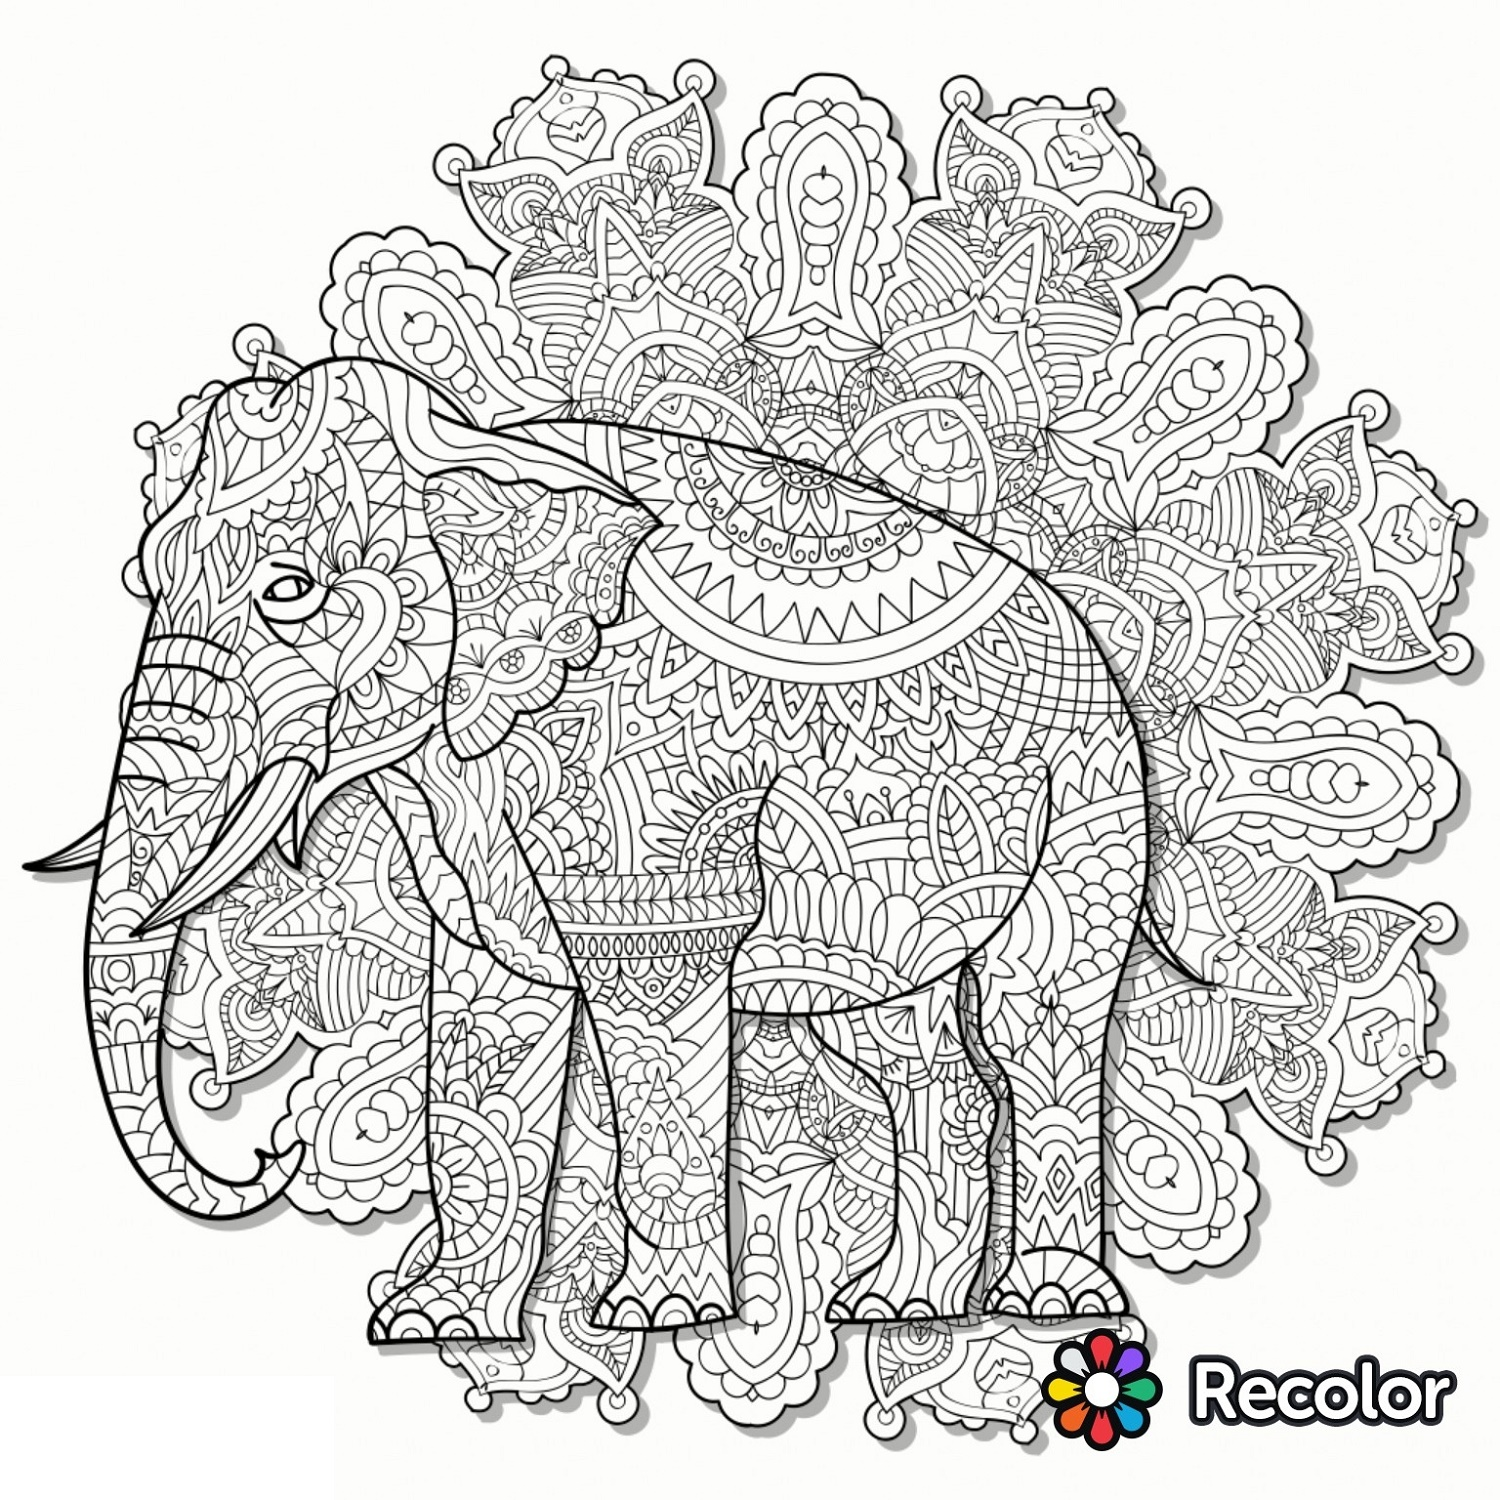 Recolor-Coloring-Book-Elephant